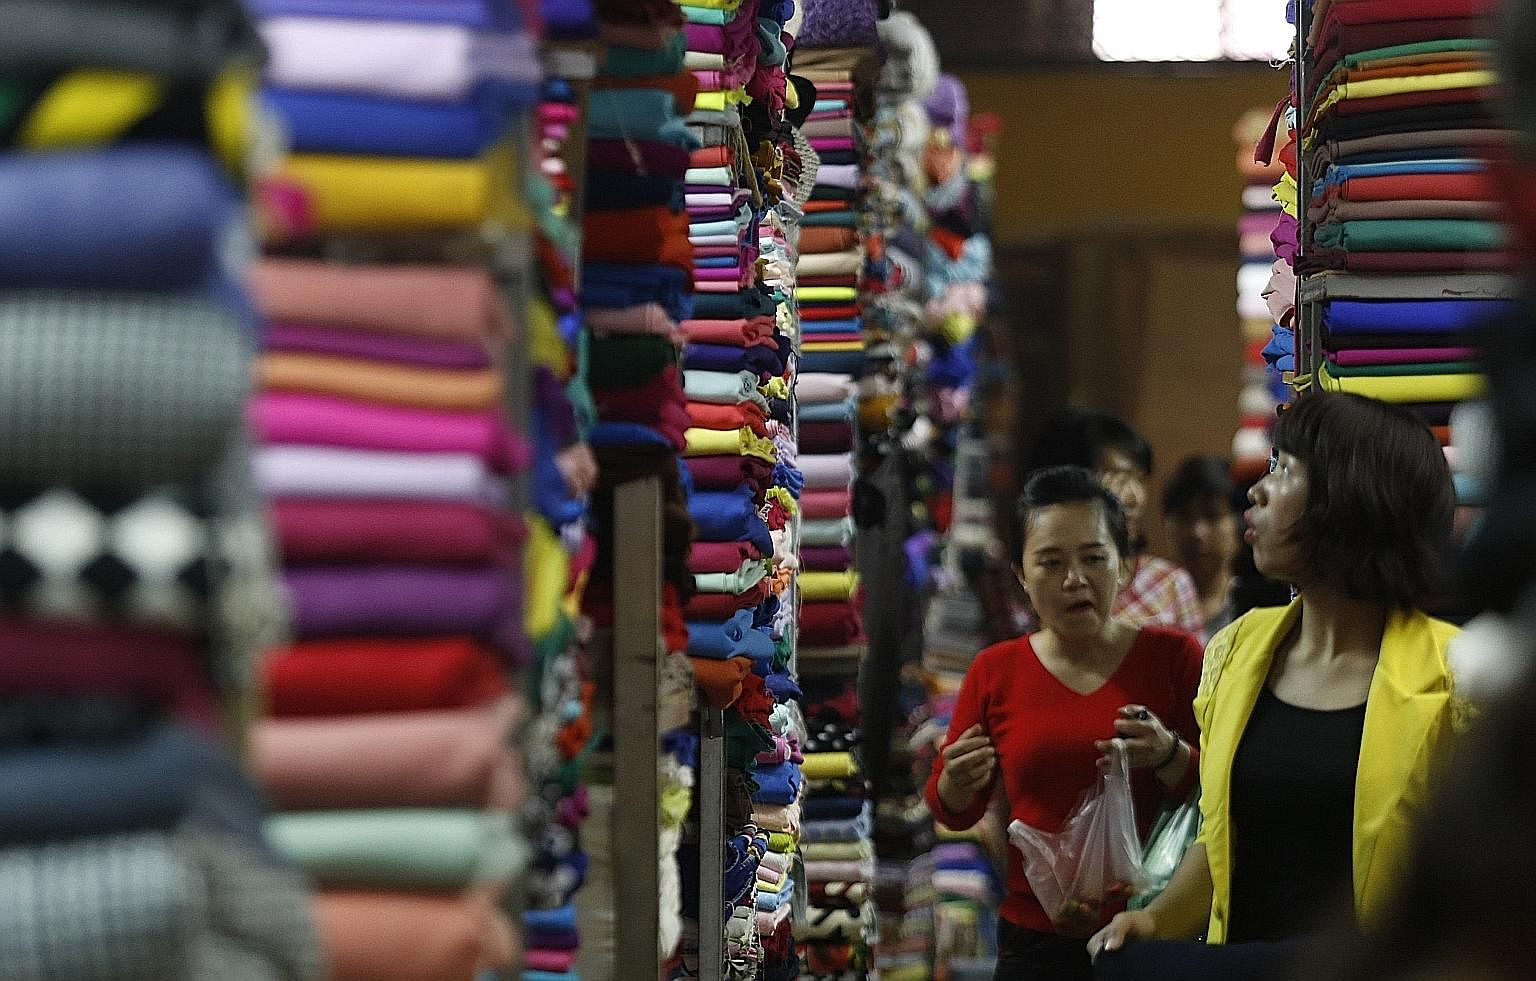 Customers walking among rows of fabric on display at a market in Hanoi. Despite Vietnam's tremendous progress, the nation remains in a fragile state with one-third of its 30 million people being vulnerable to falling back into poverty.